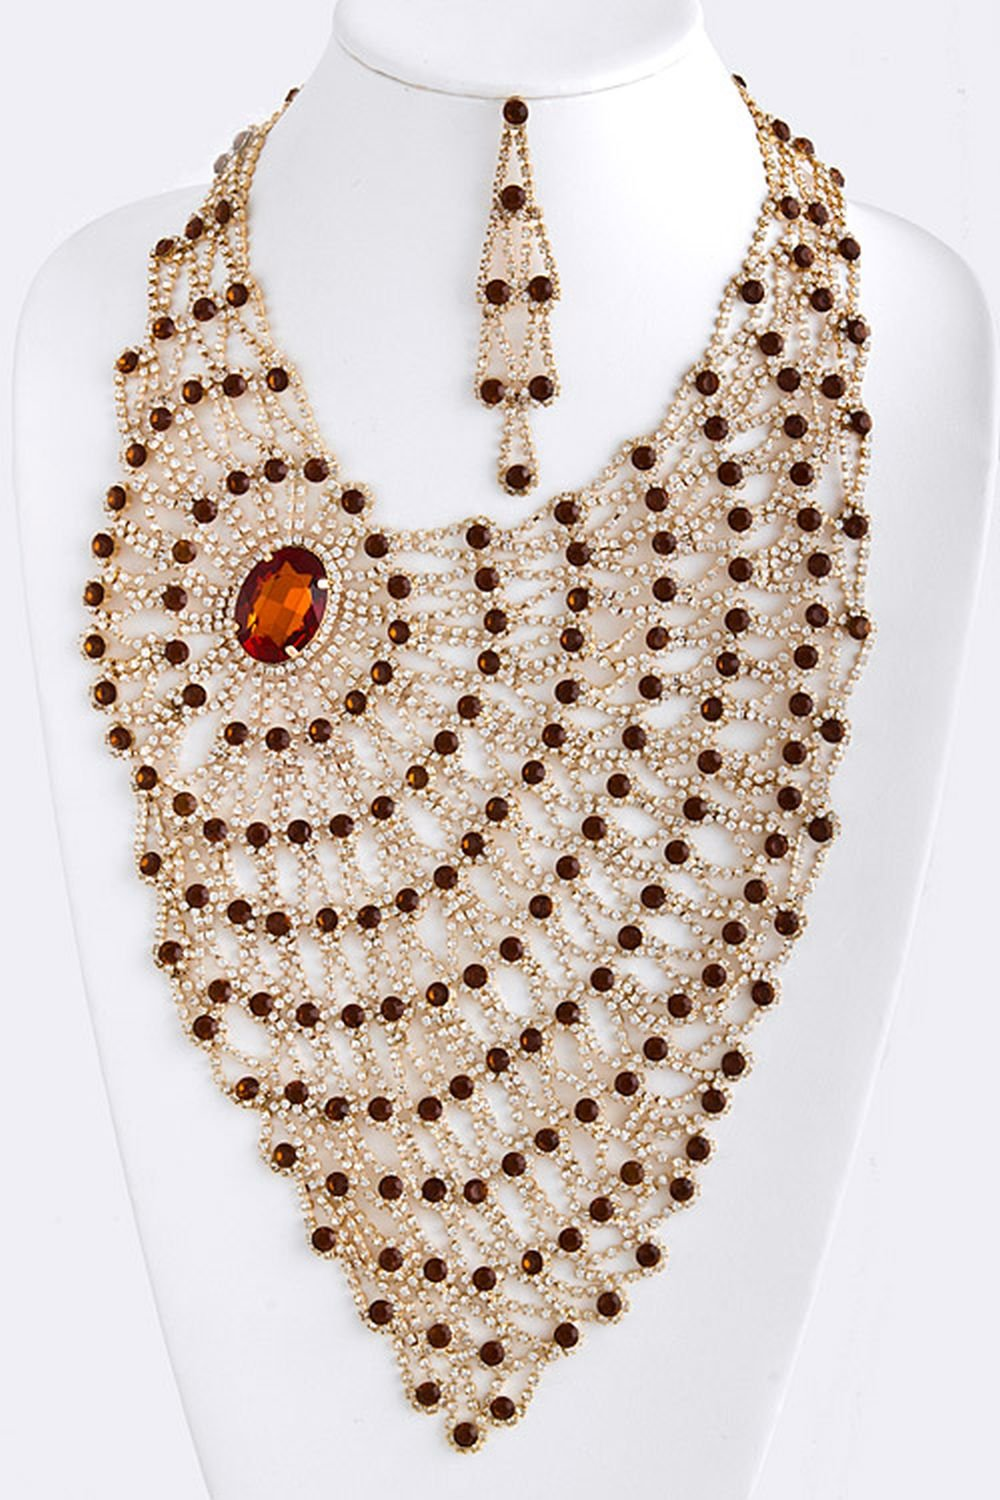 TRENDY FASHION JEWELRY SIDE JEWEL RHINESTONE DRAPE NECKLACE BY FASHION DESTINATION | (Smoked Topaz)